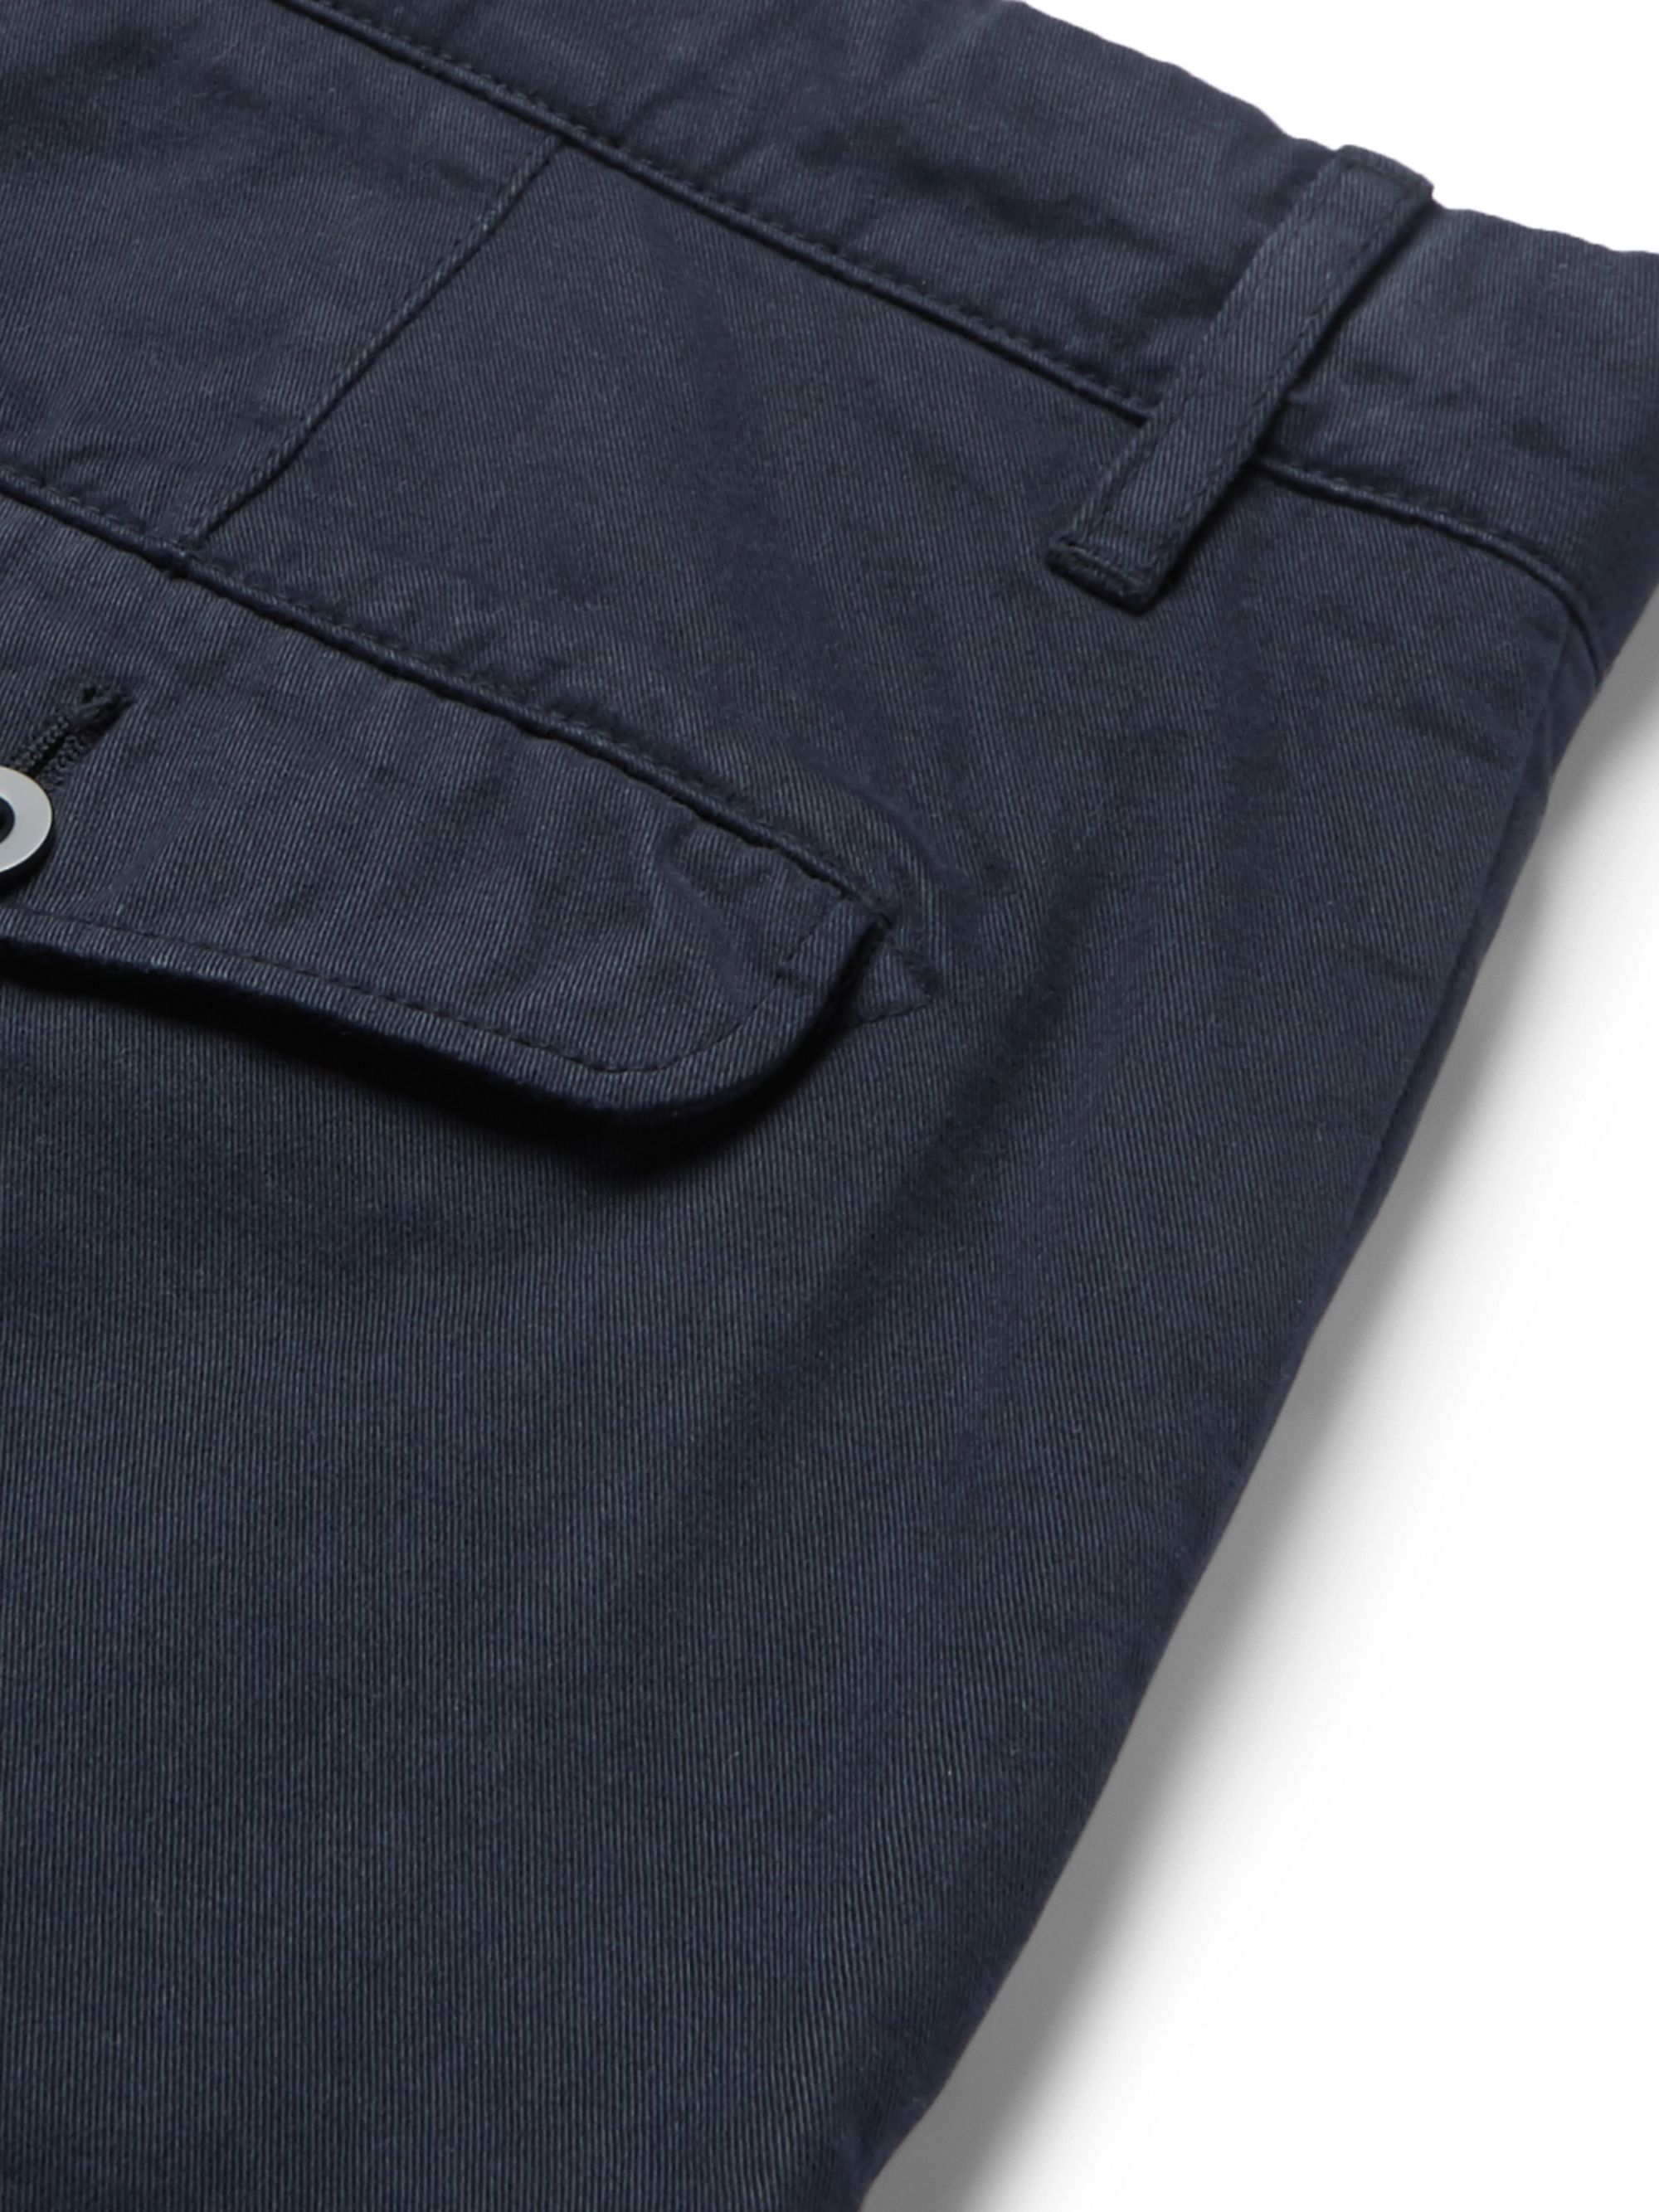 Mr P. Straight-Leg Grey Garment-Dyed Cotton-Twill Chinos